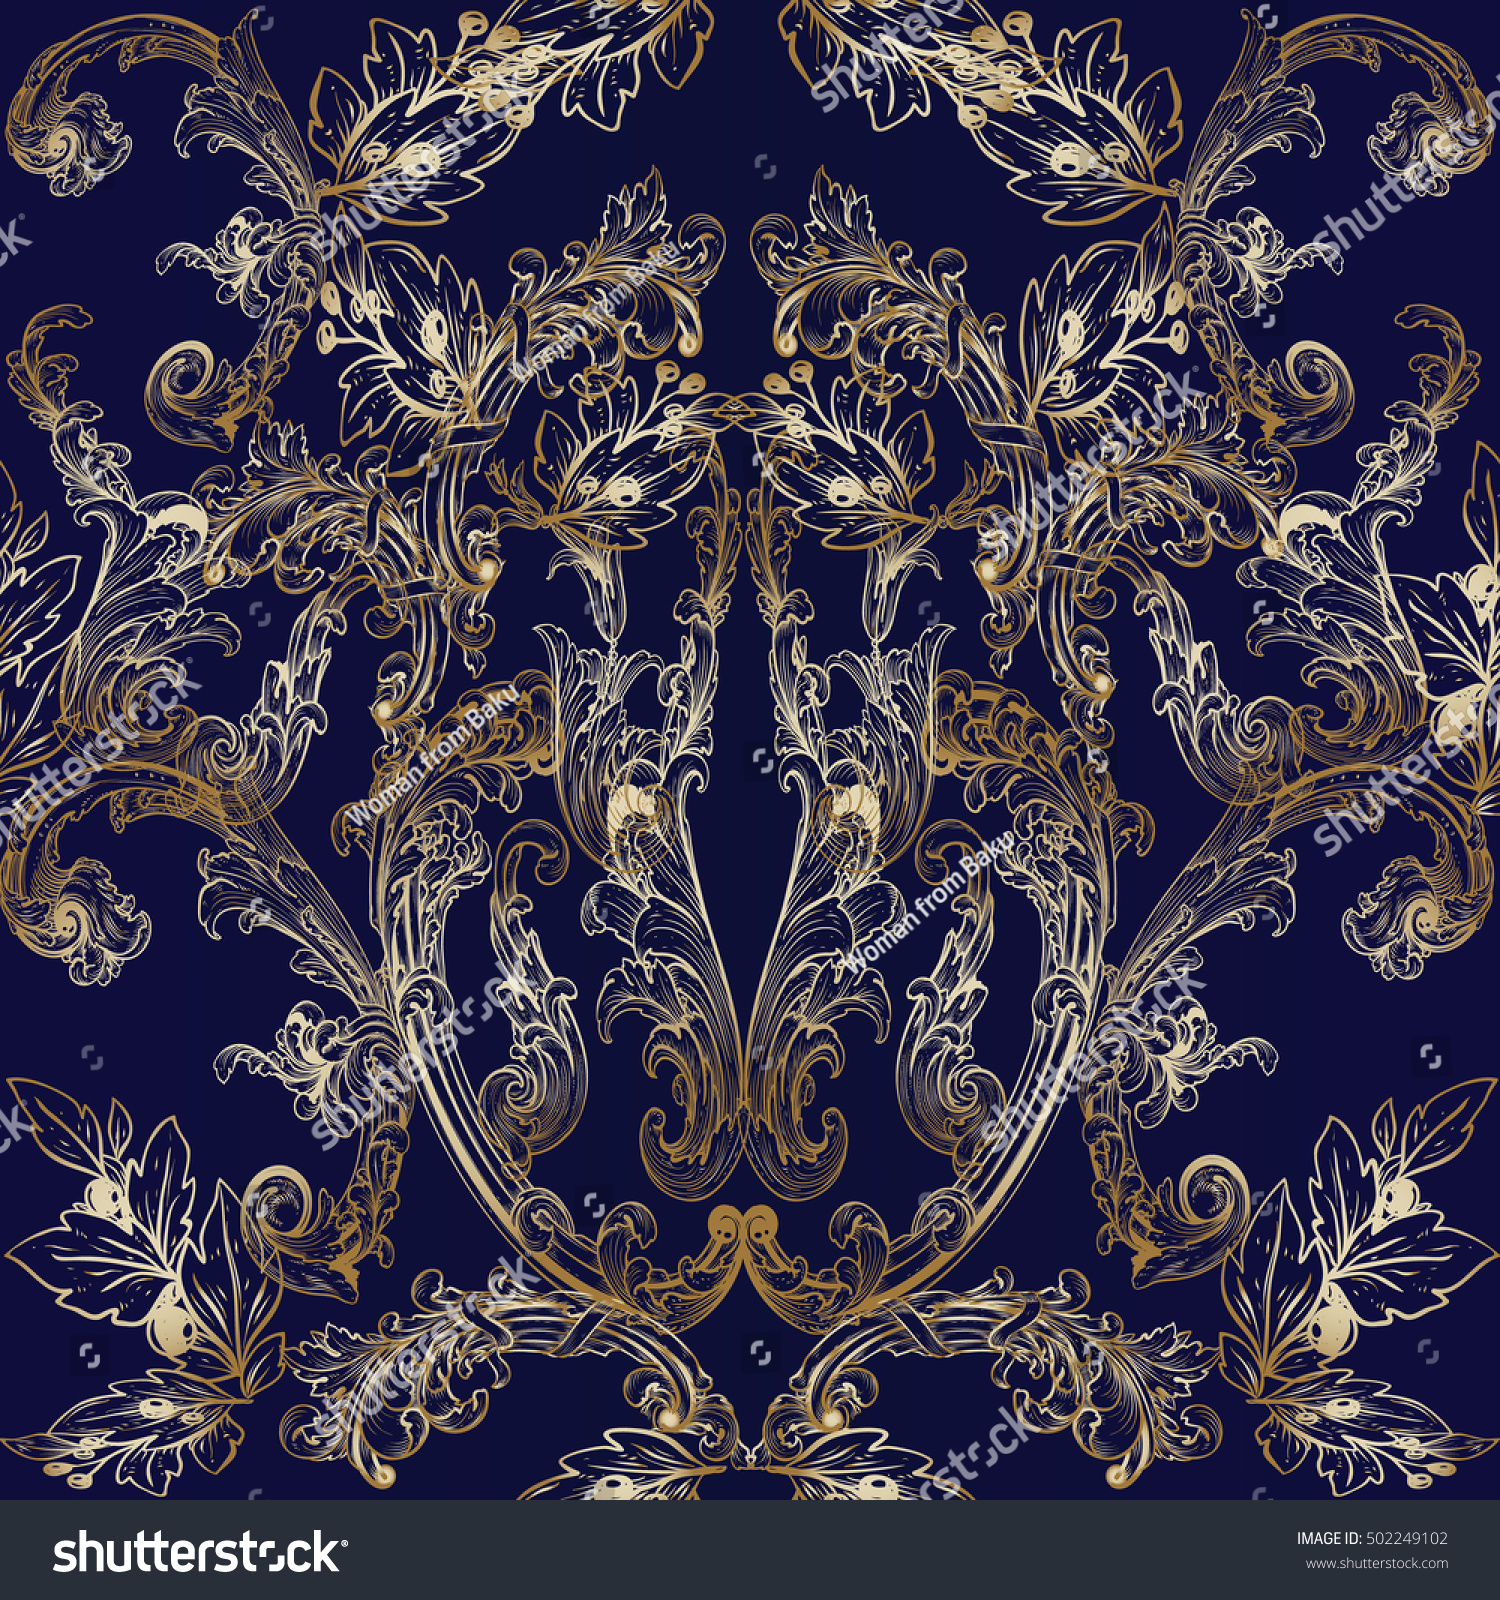 Luxury Baroque Damask Floral Dark Blue Vector Seamless Pattern Wallpaper Illustration With Vintage Antique Decorative Gold